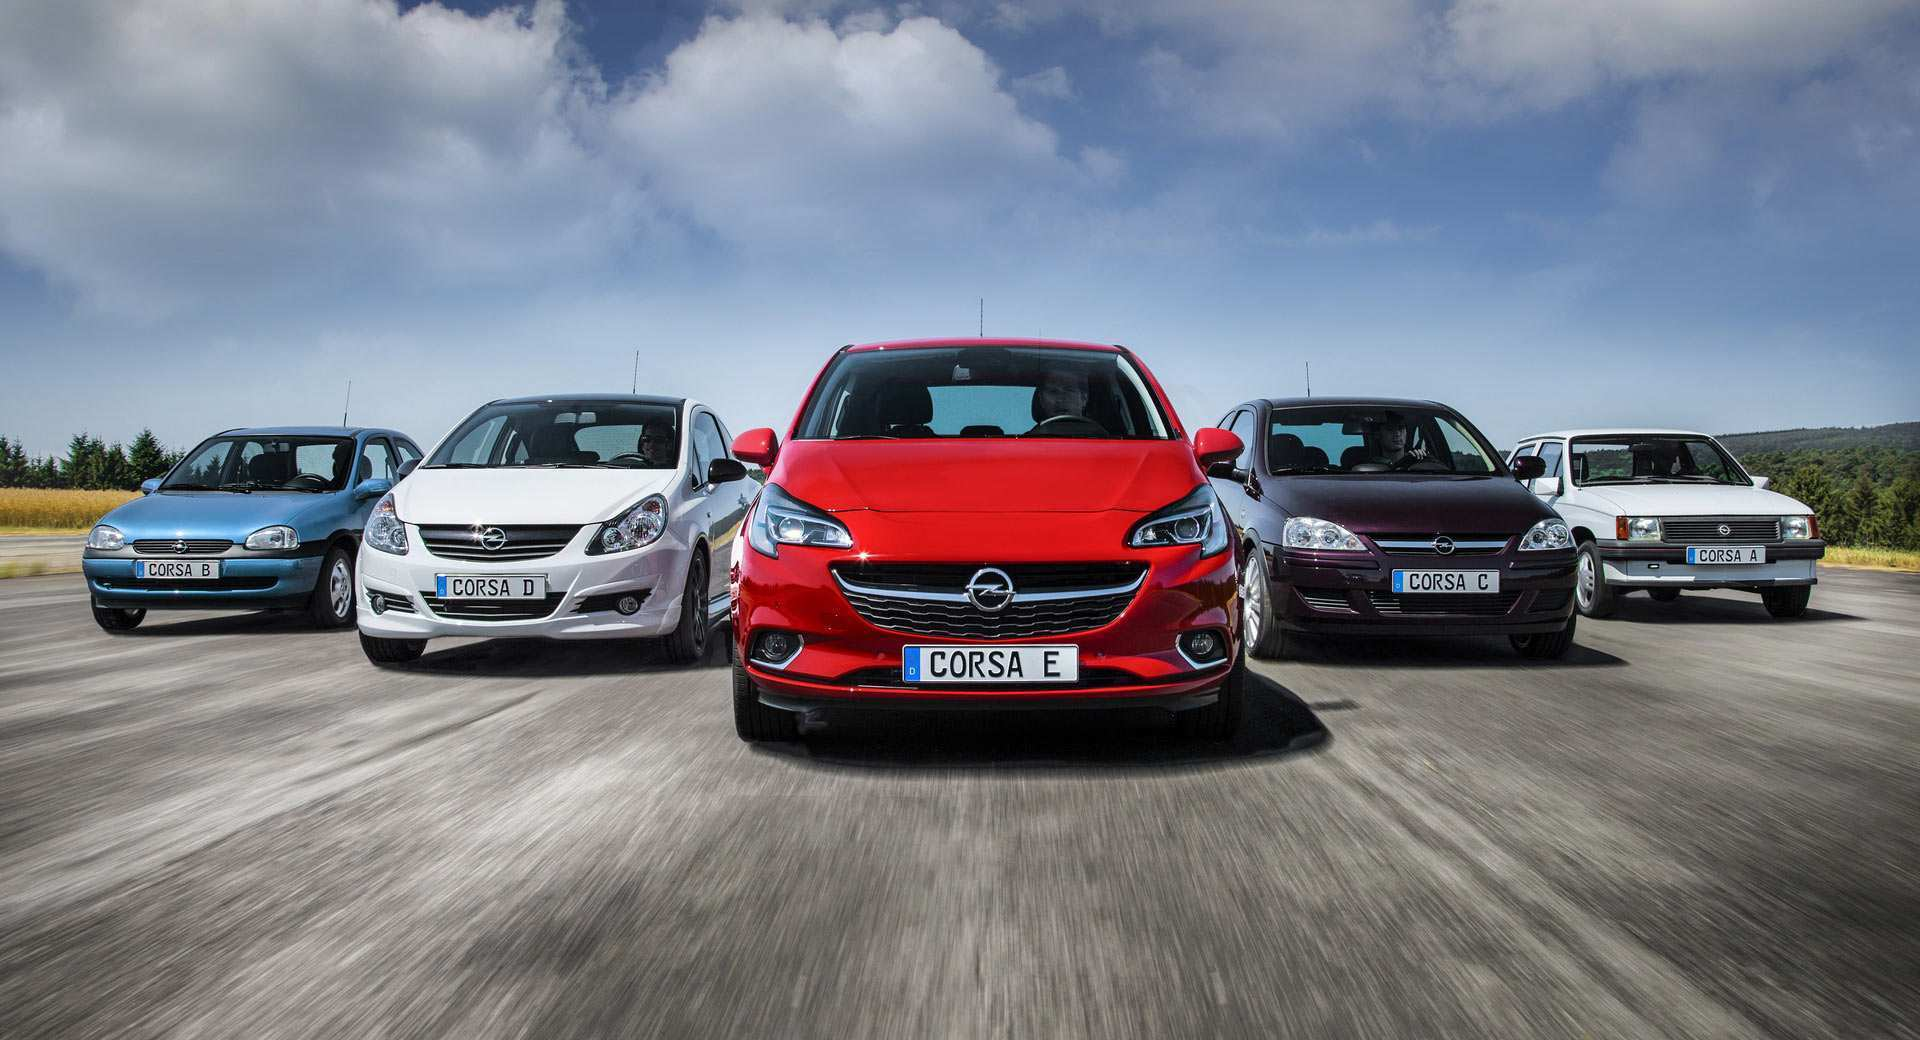 38 A Opel Will Launch Corsa Ev In 2020 New Review